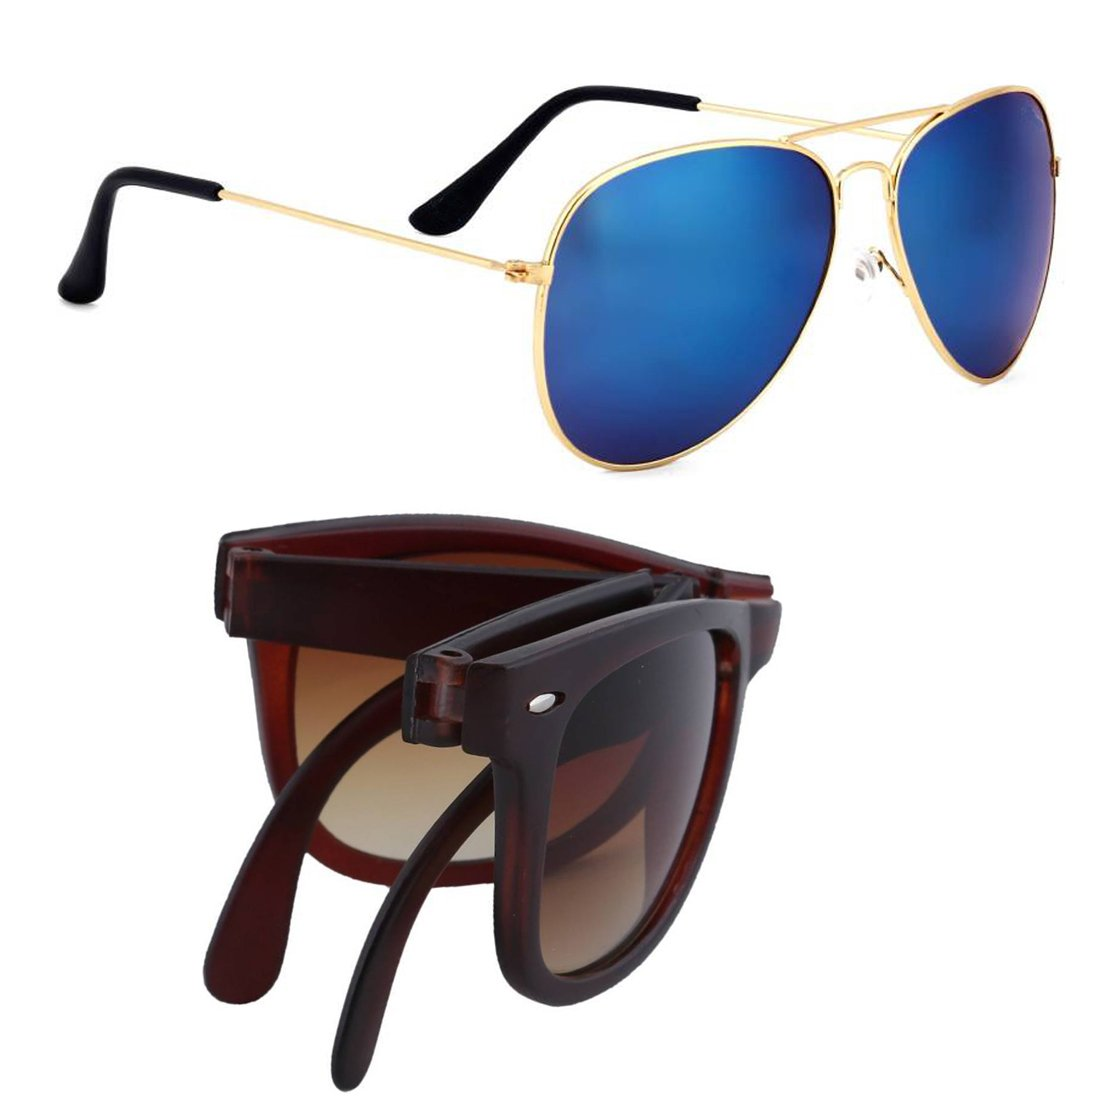 Elligator Stylish Aviator Mirrored Unisex Sunglasses Combo